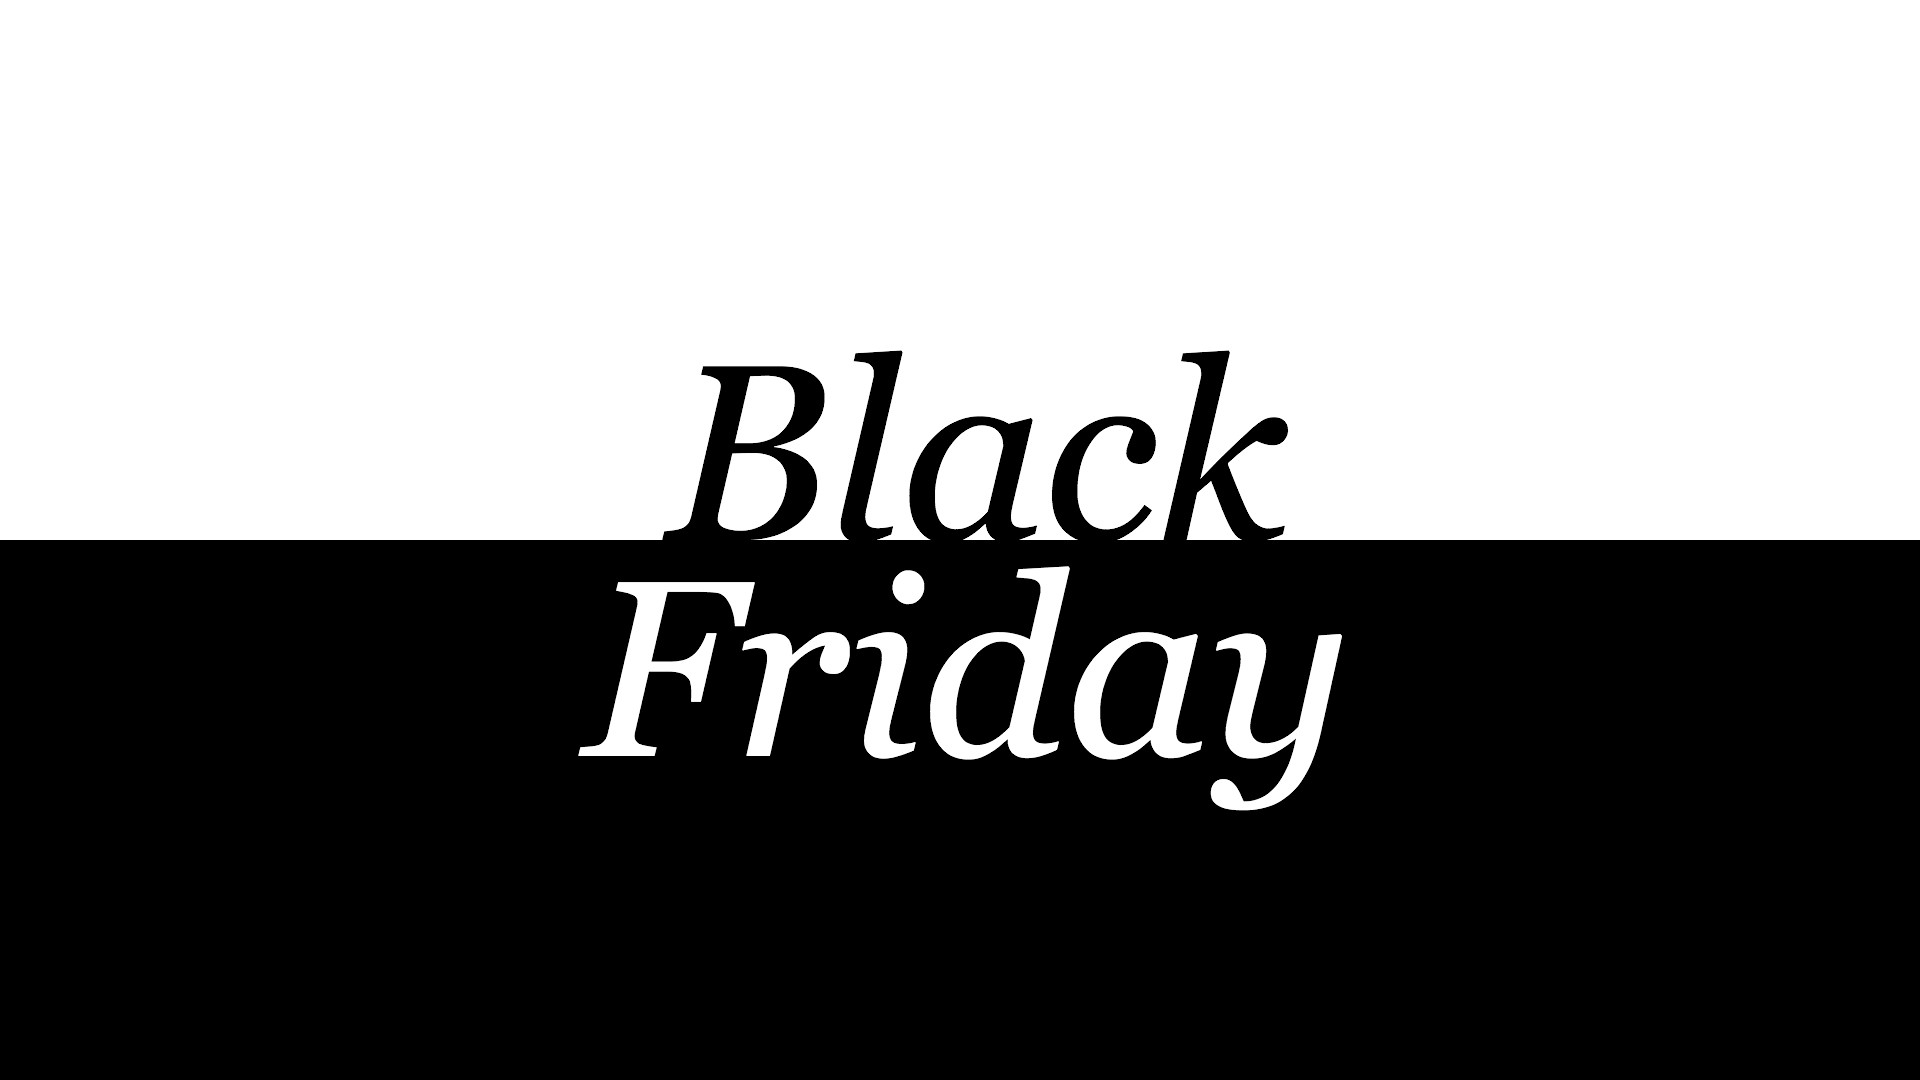 Black Friday Free Wallpaper and Background